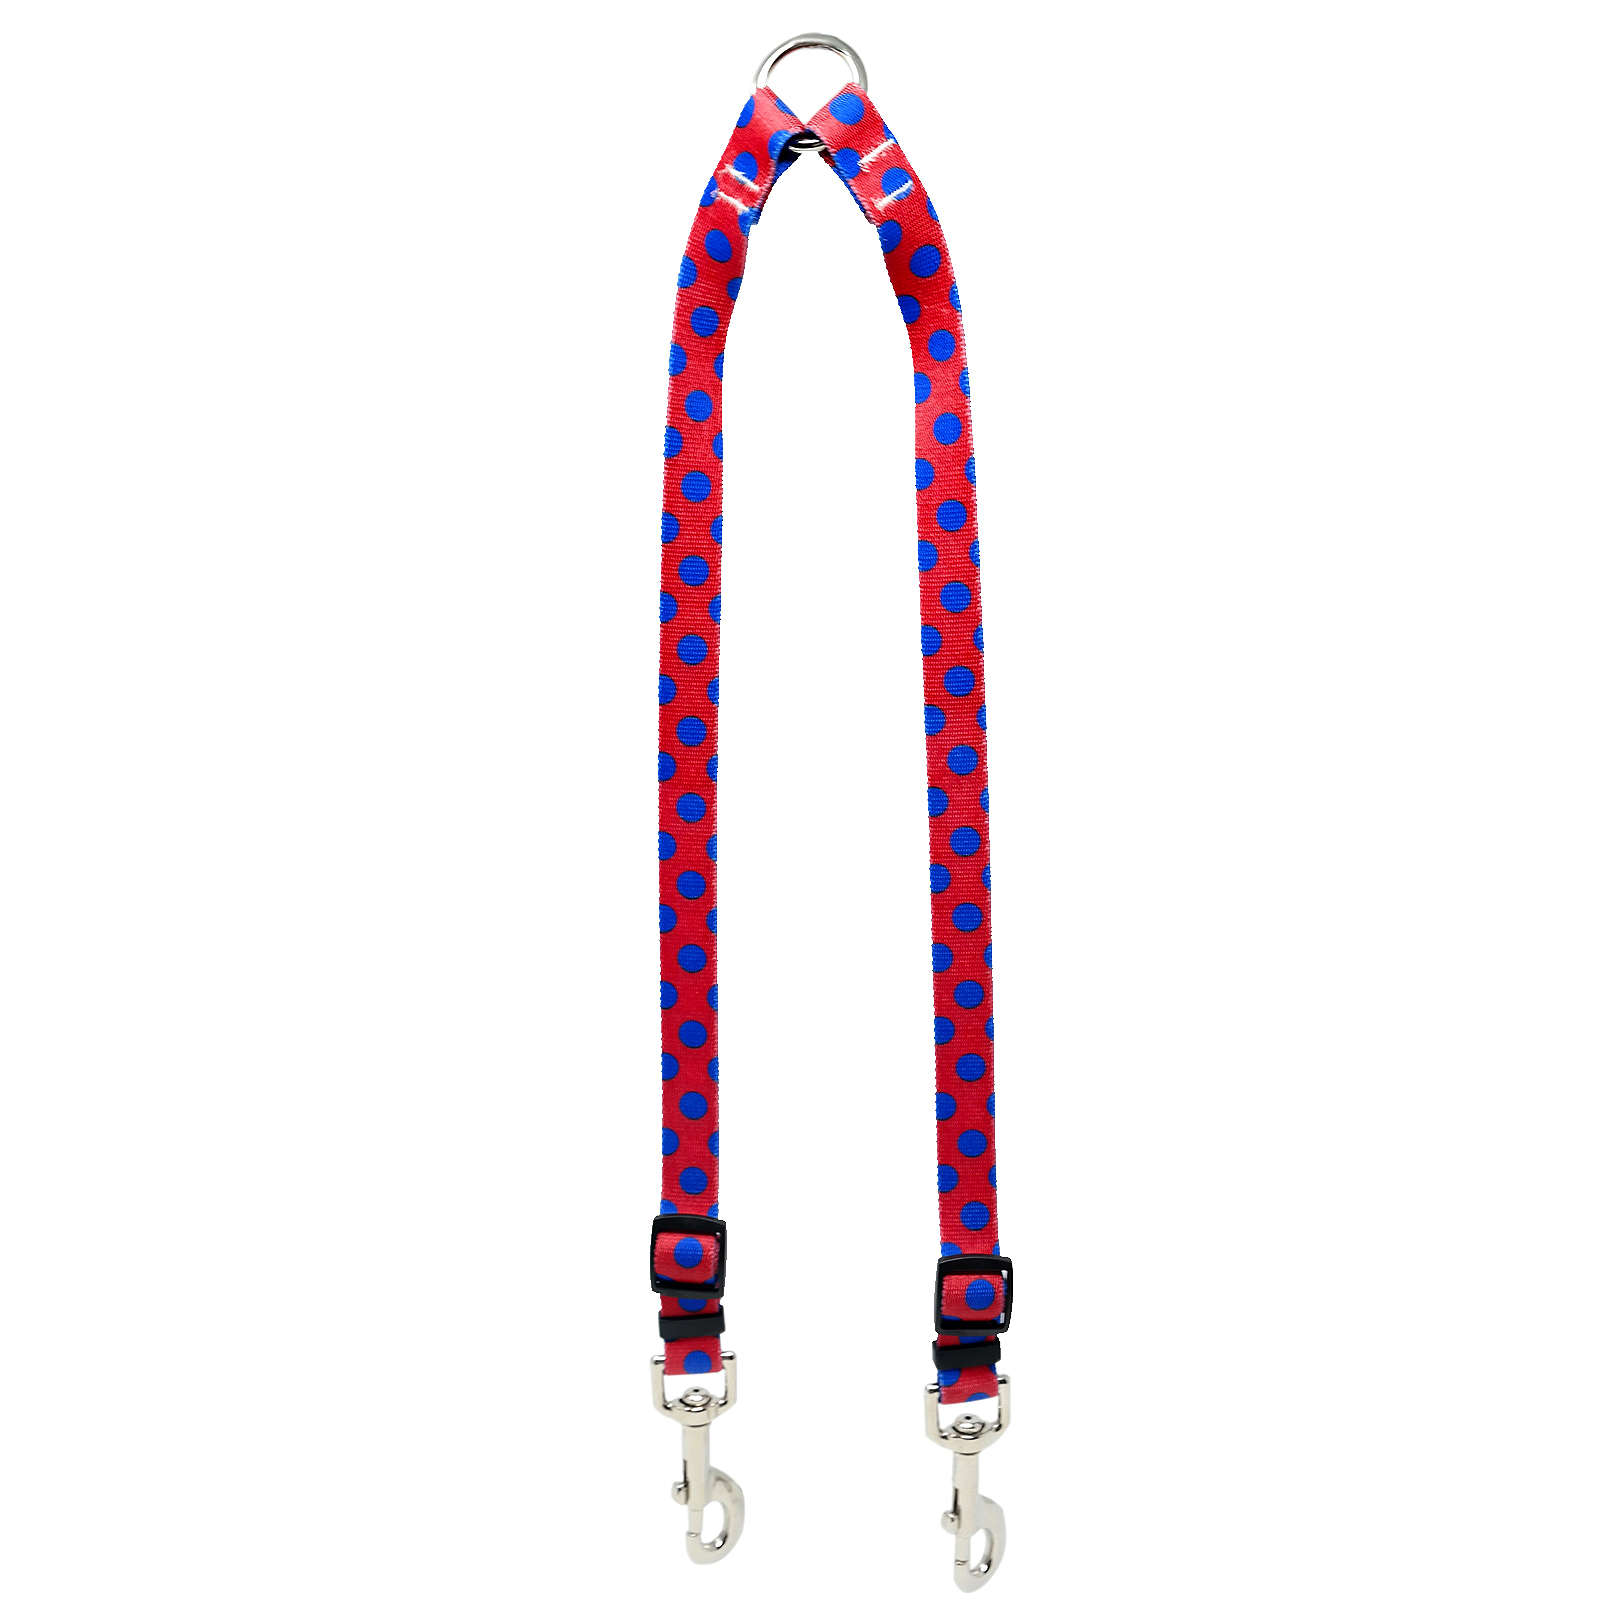 Red & Royal Blue Polka Coupler Lead